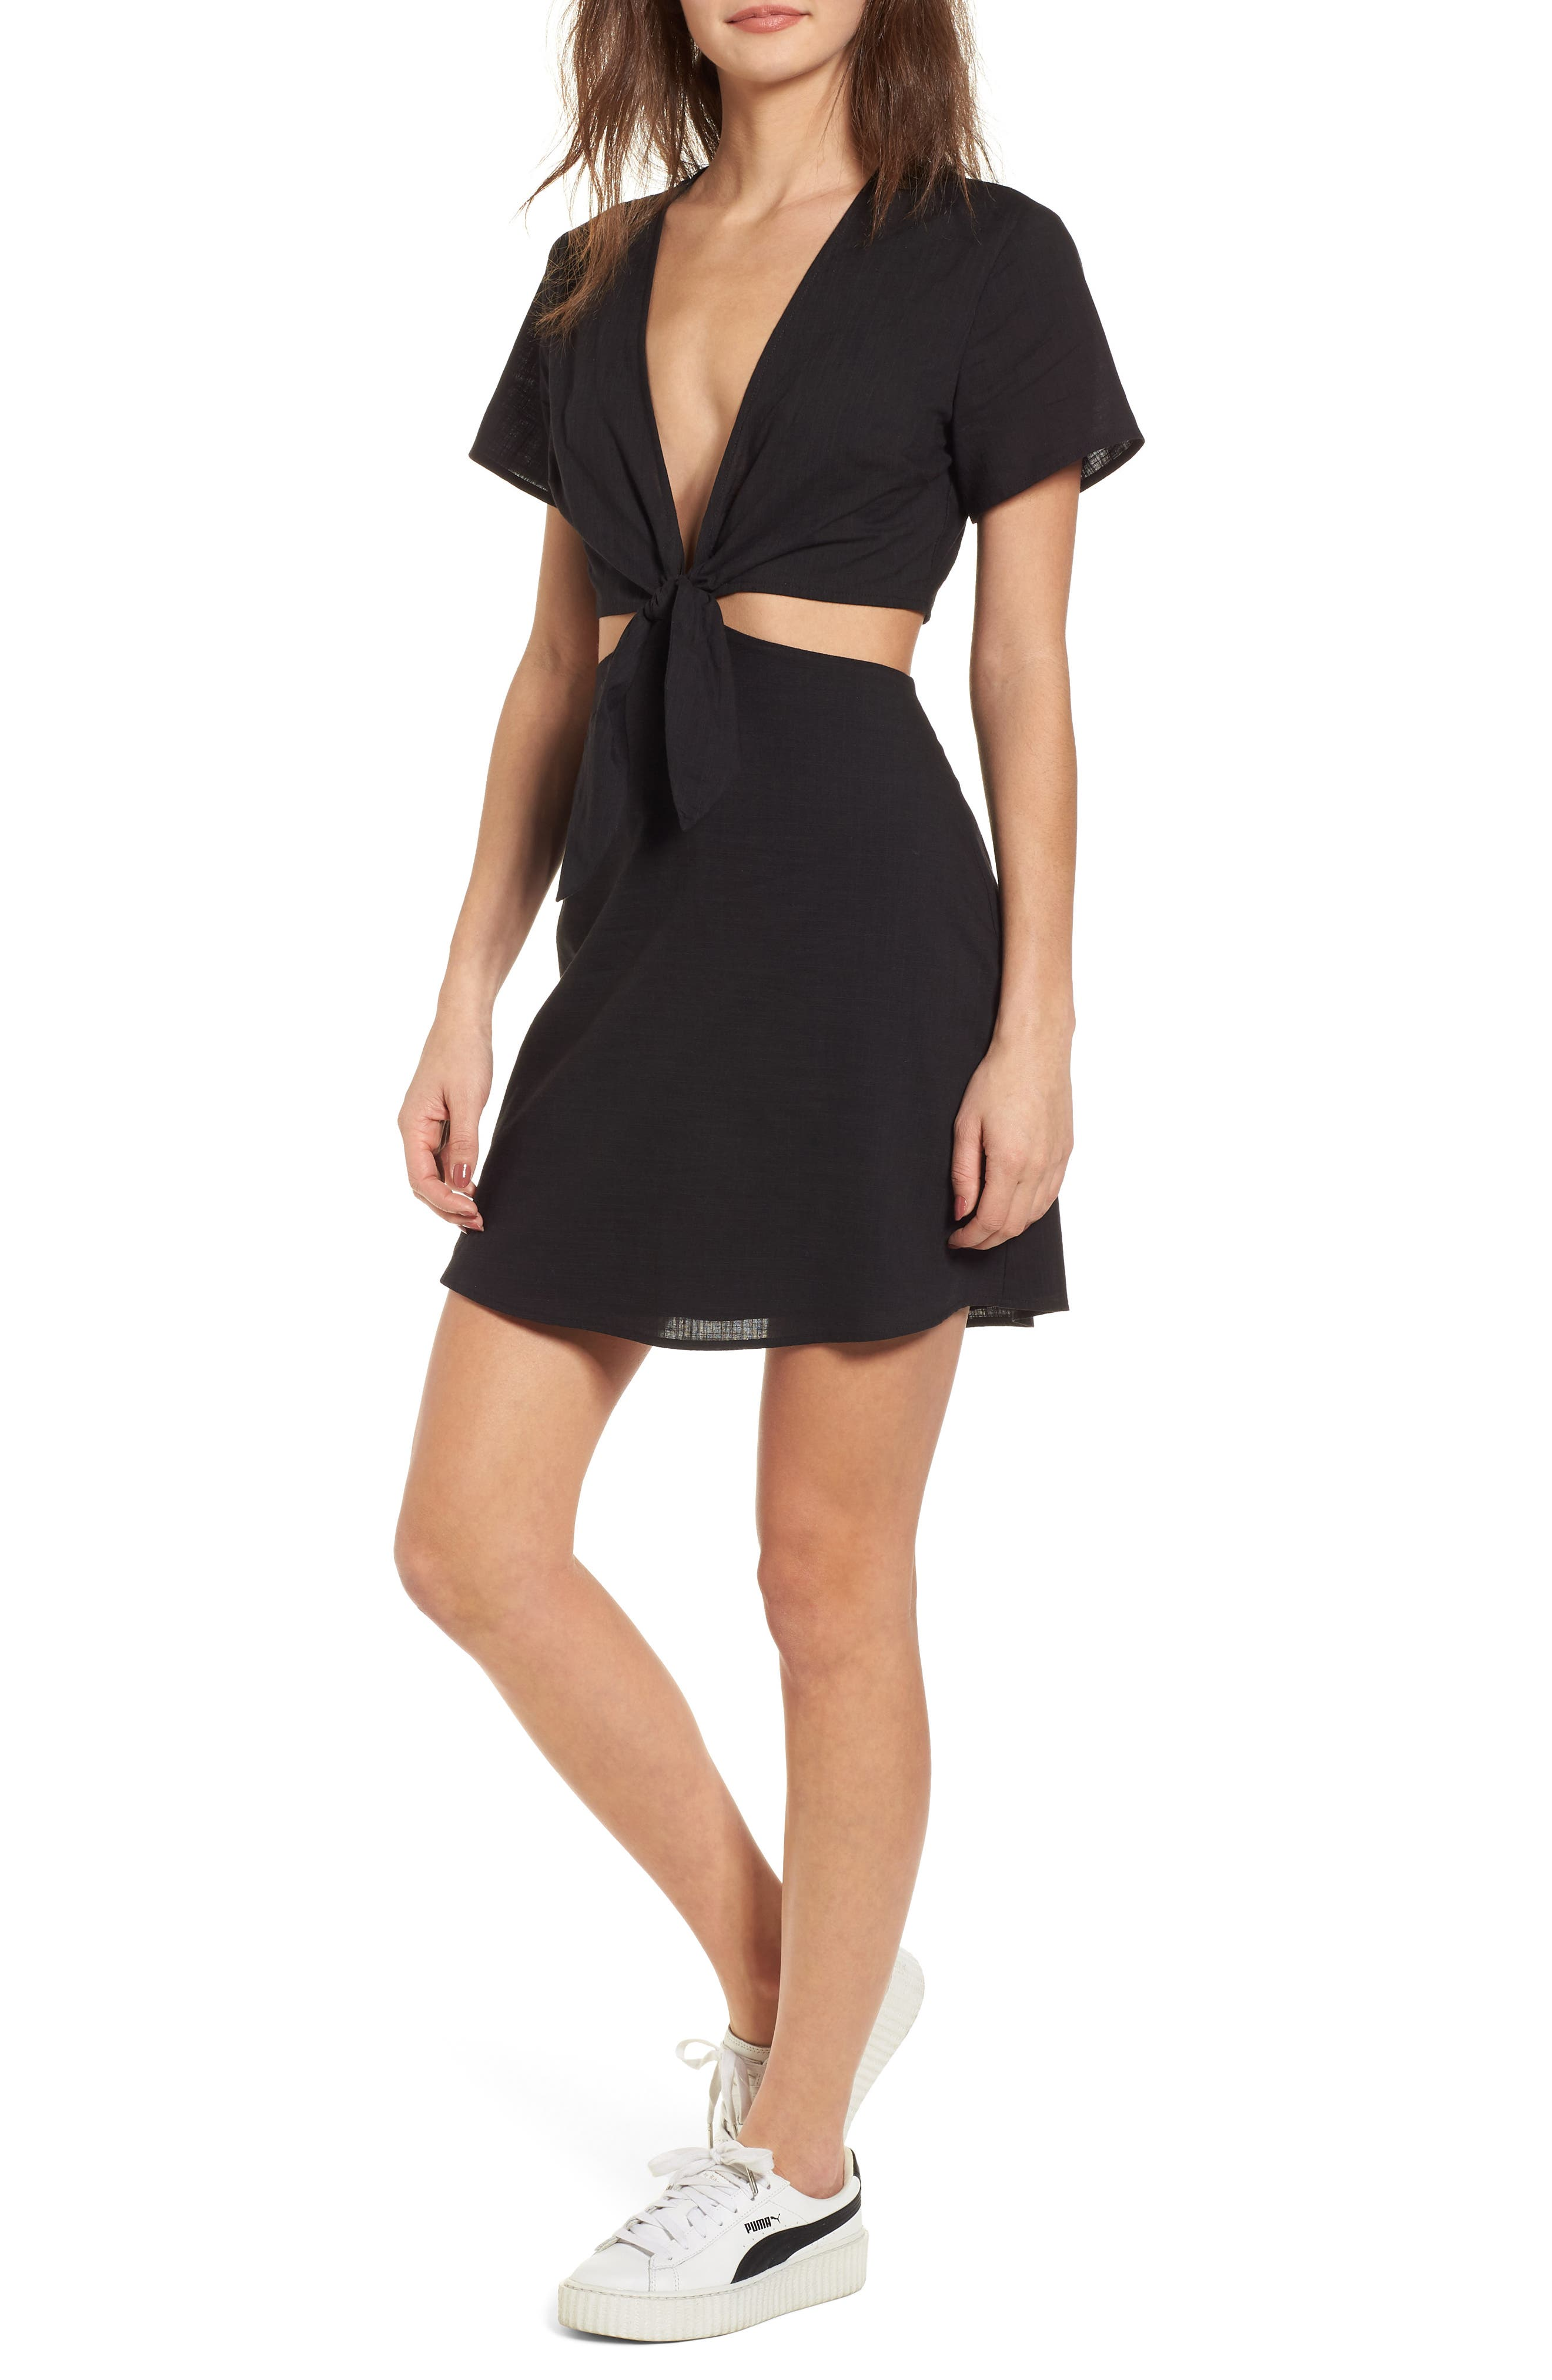 Emily Cutout Minidress,                         Main,                         color, Black